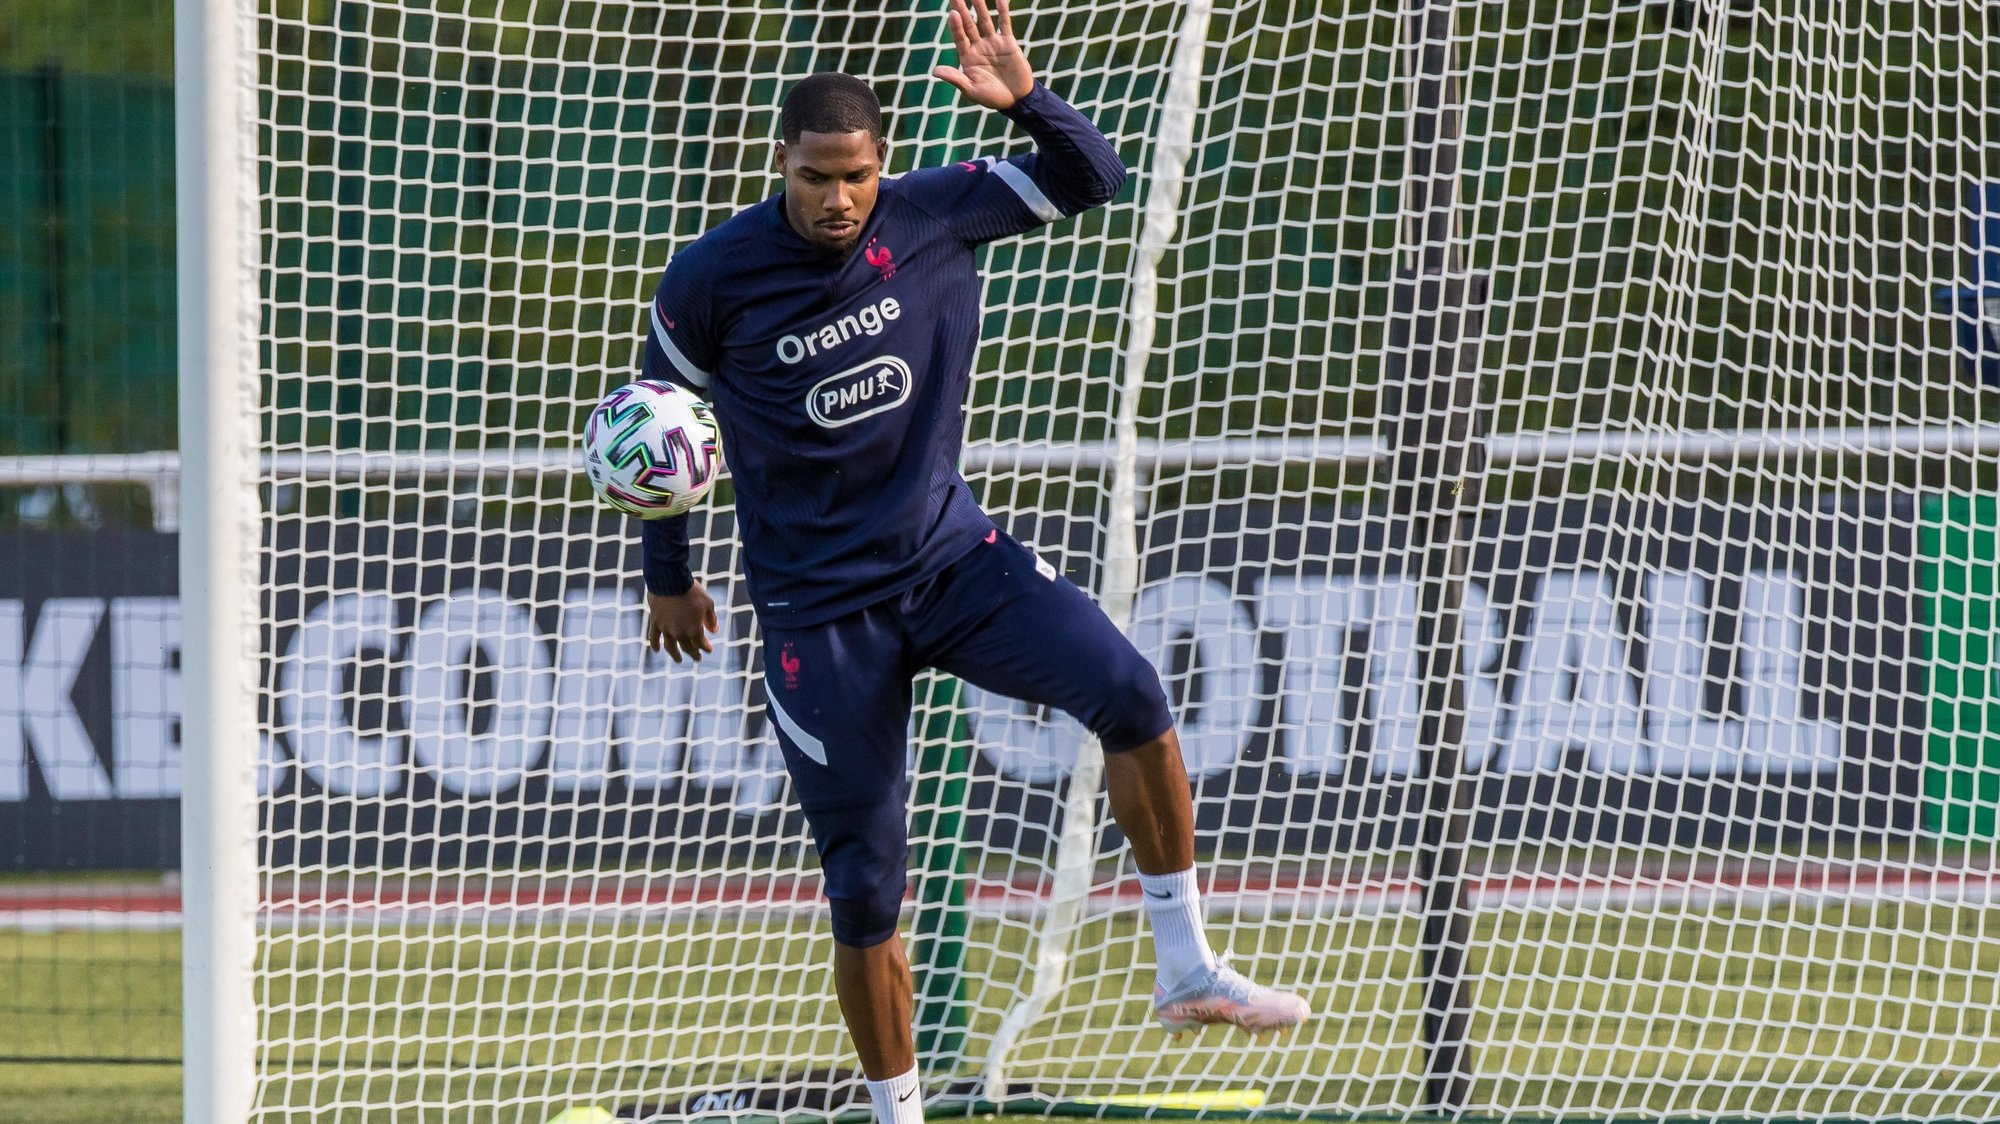 epa09231760 French national soccer team goalkeeper Mike Maignan attends his team's training session in Clairefontaine-en-Yvelines, outside Paris, France, 27 May 2021. The French team is preparing for the upcoming UEFA EURO 2020 soccer championship.  EPA/CHRISTOPHE PETIT TESSON